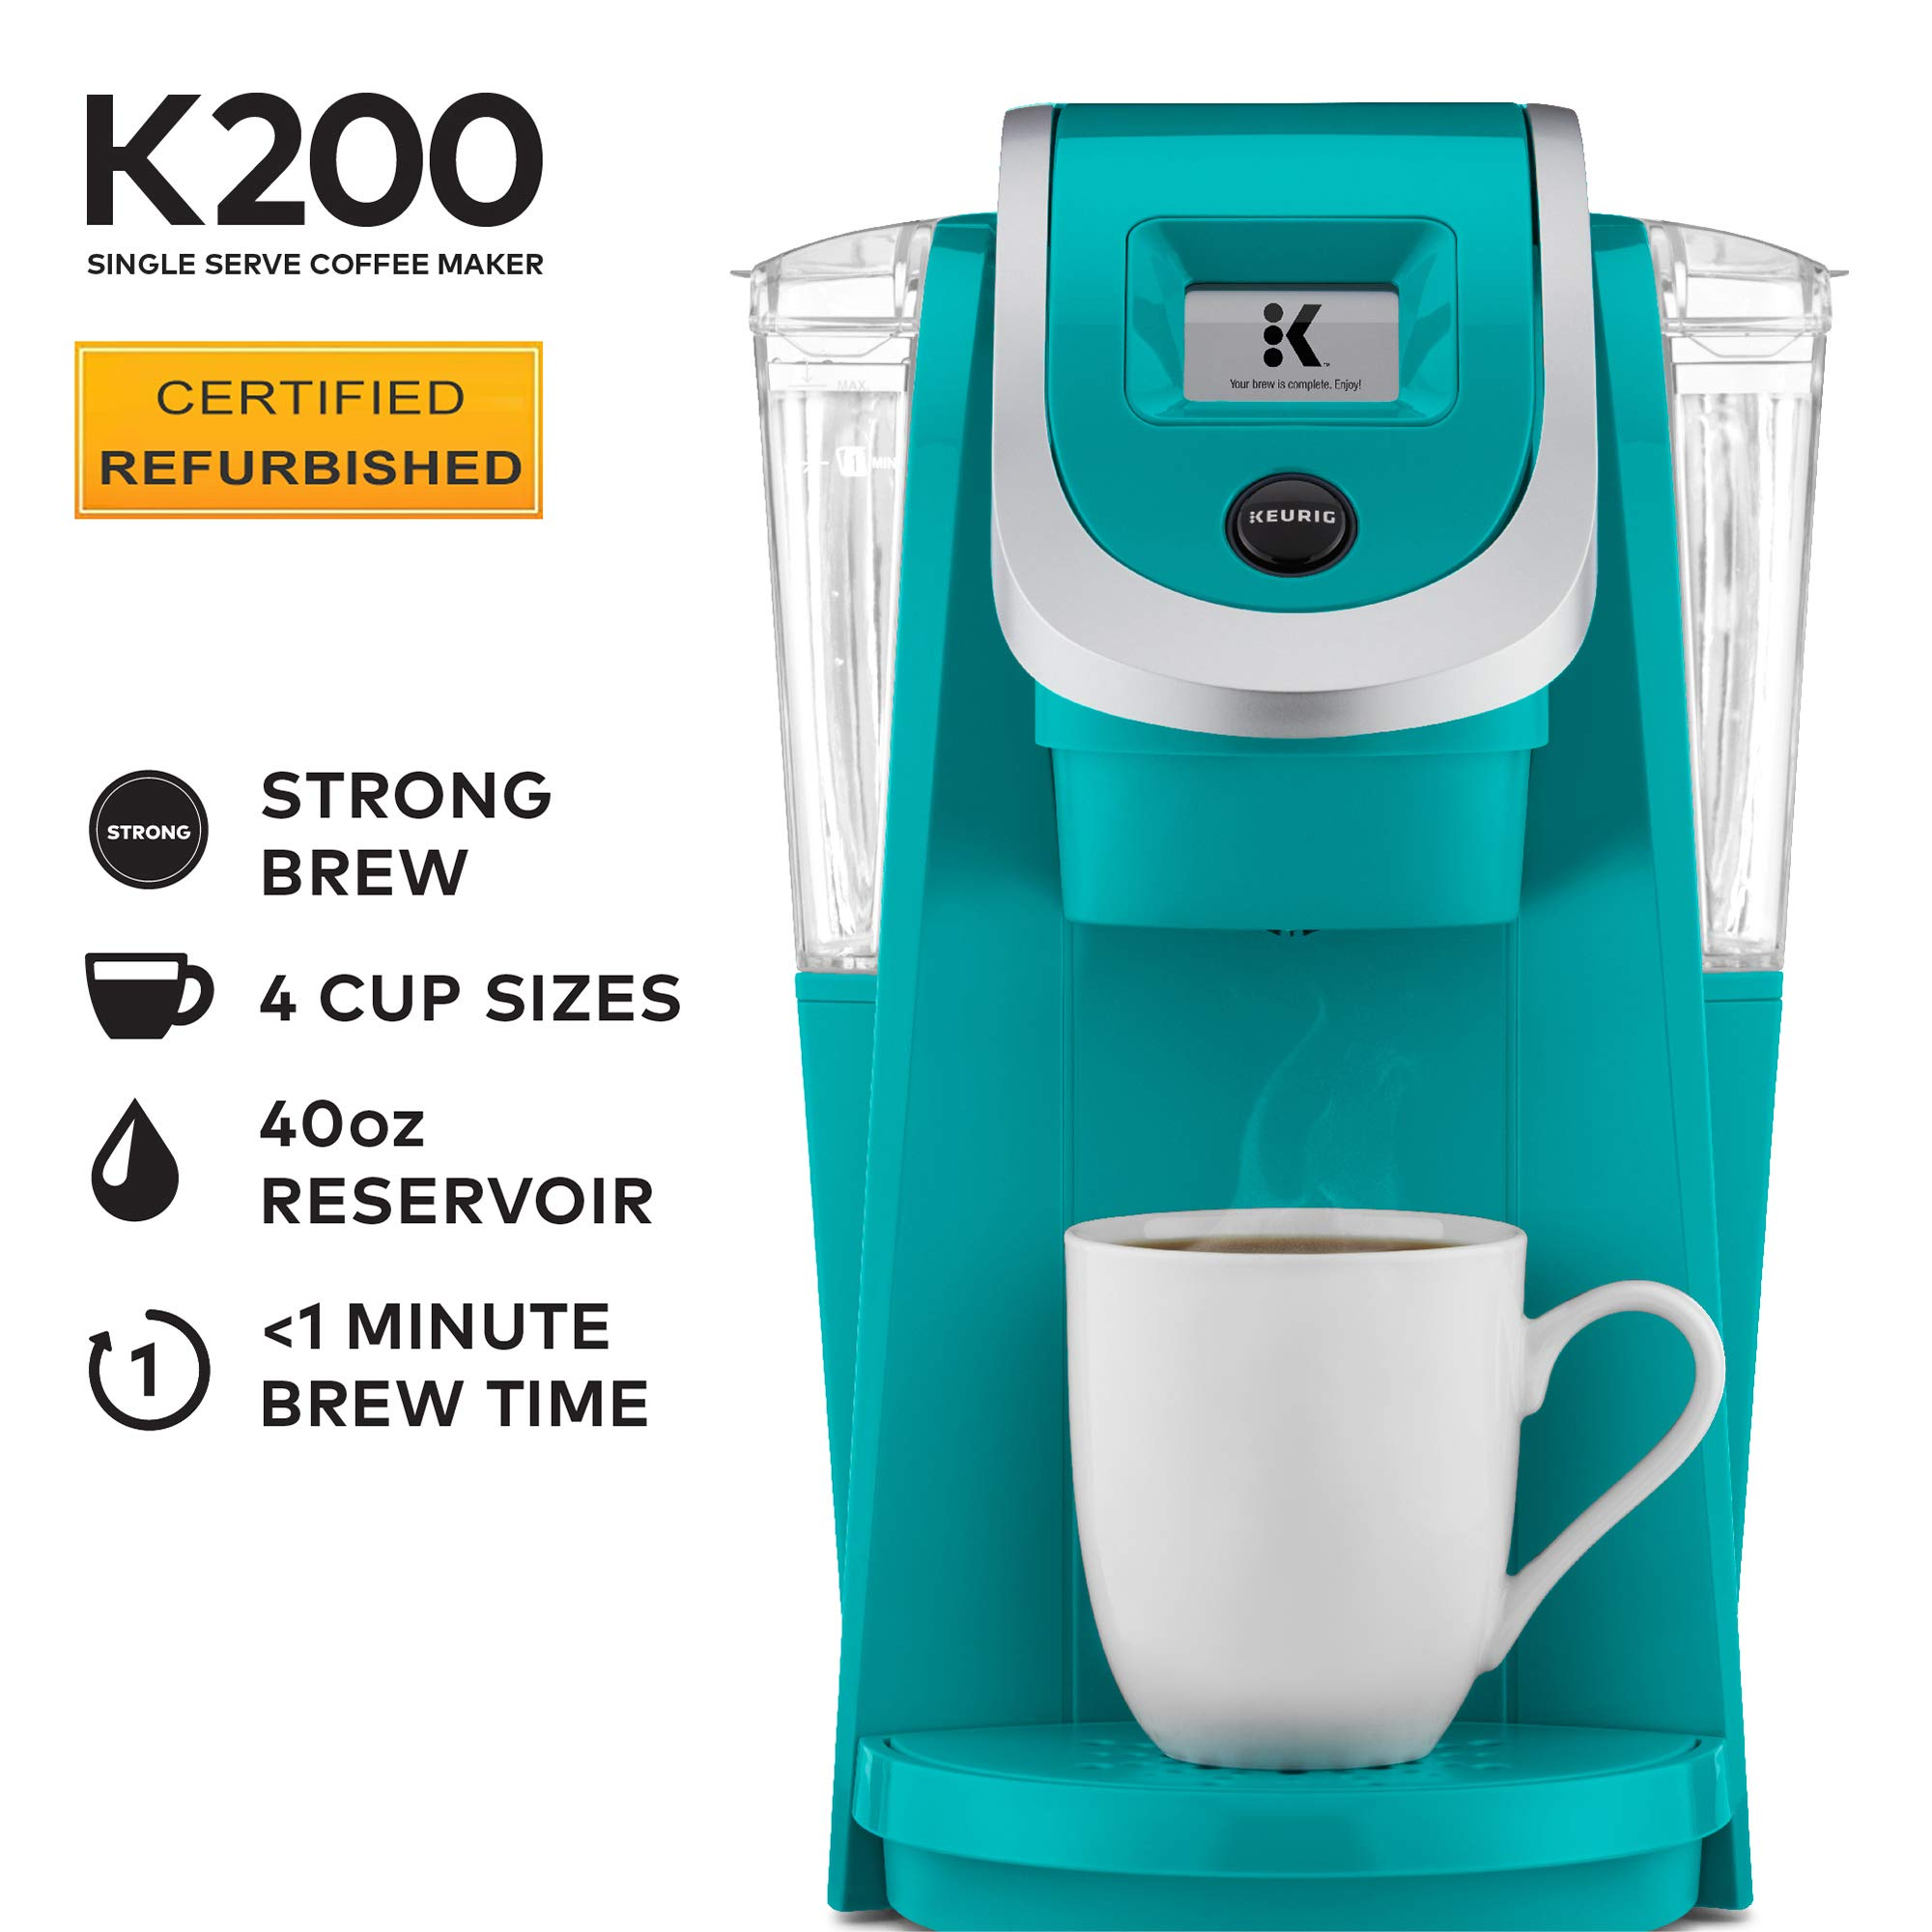 Keurig K200 Certified Refurbished Coffee Maker, Single Serve K-Cup Pod Coffee Brewer, With Strength Control, Tourquise by Keurig